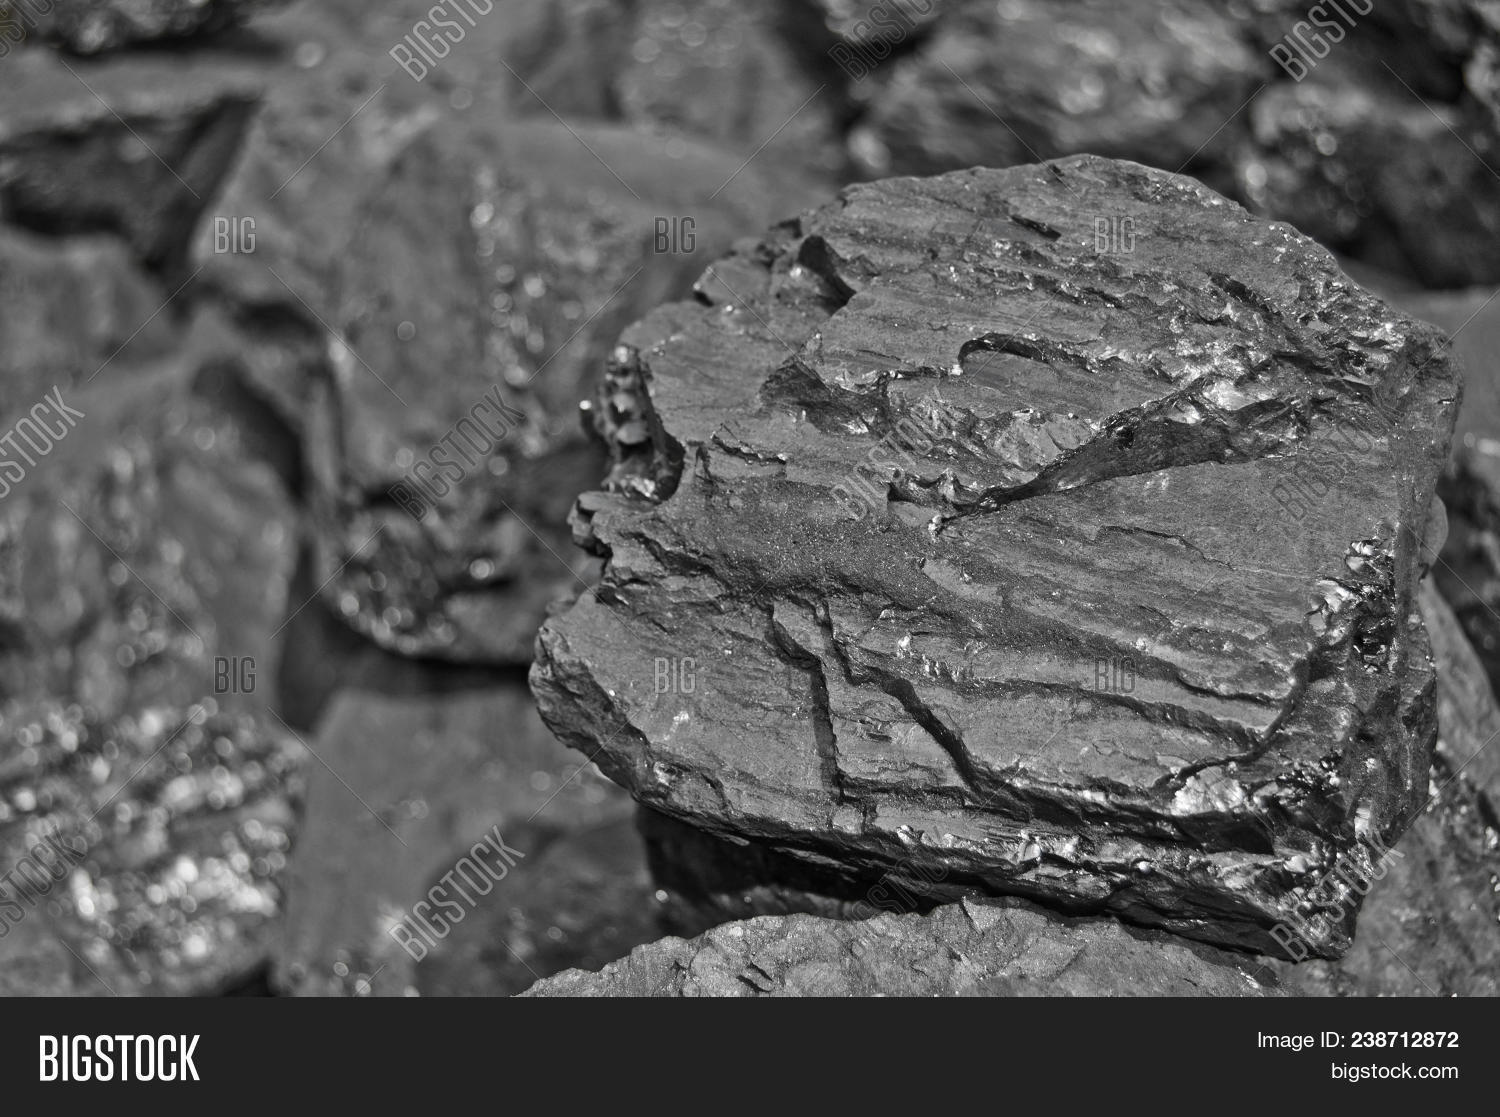 Heap Of Coal. One Rock Of Coal Close Up On Black Coal Background. Place For Text. Copy Space.high Qu